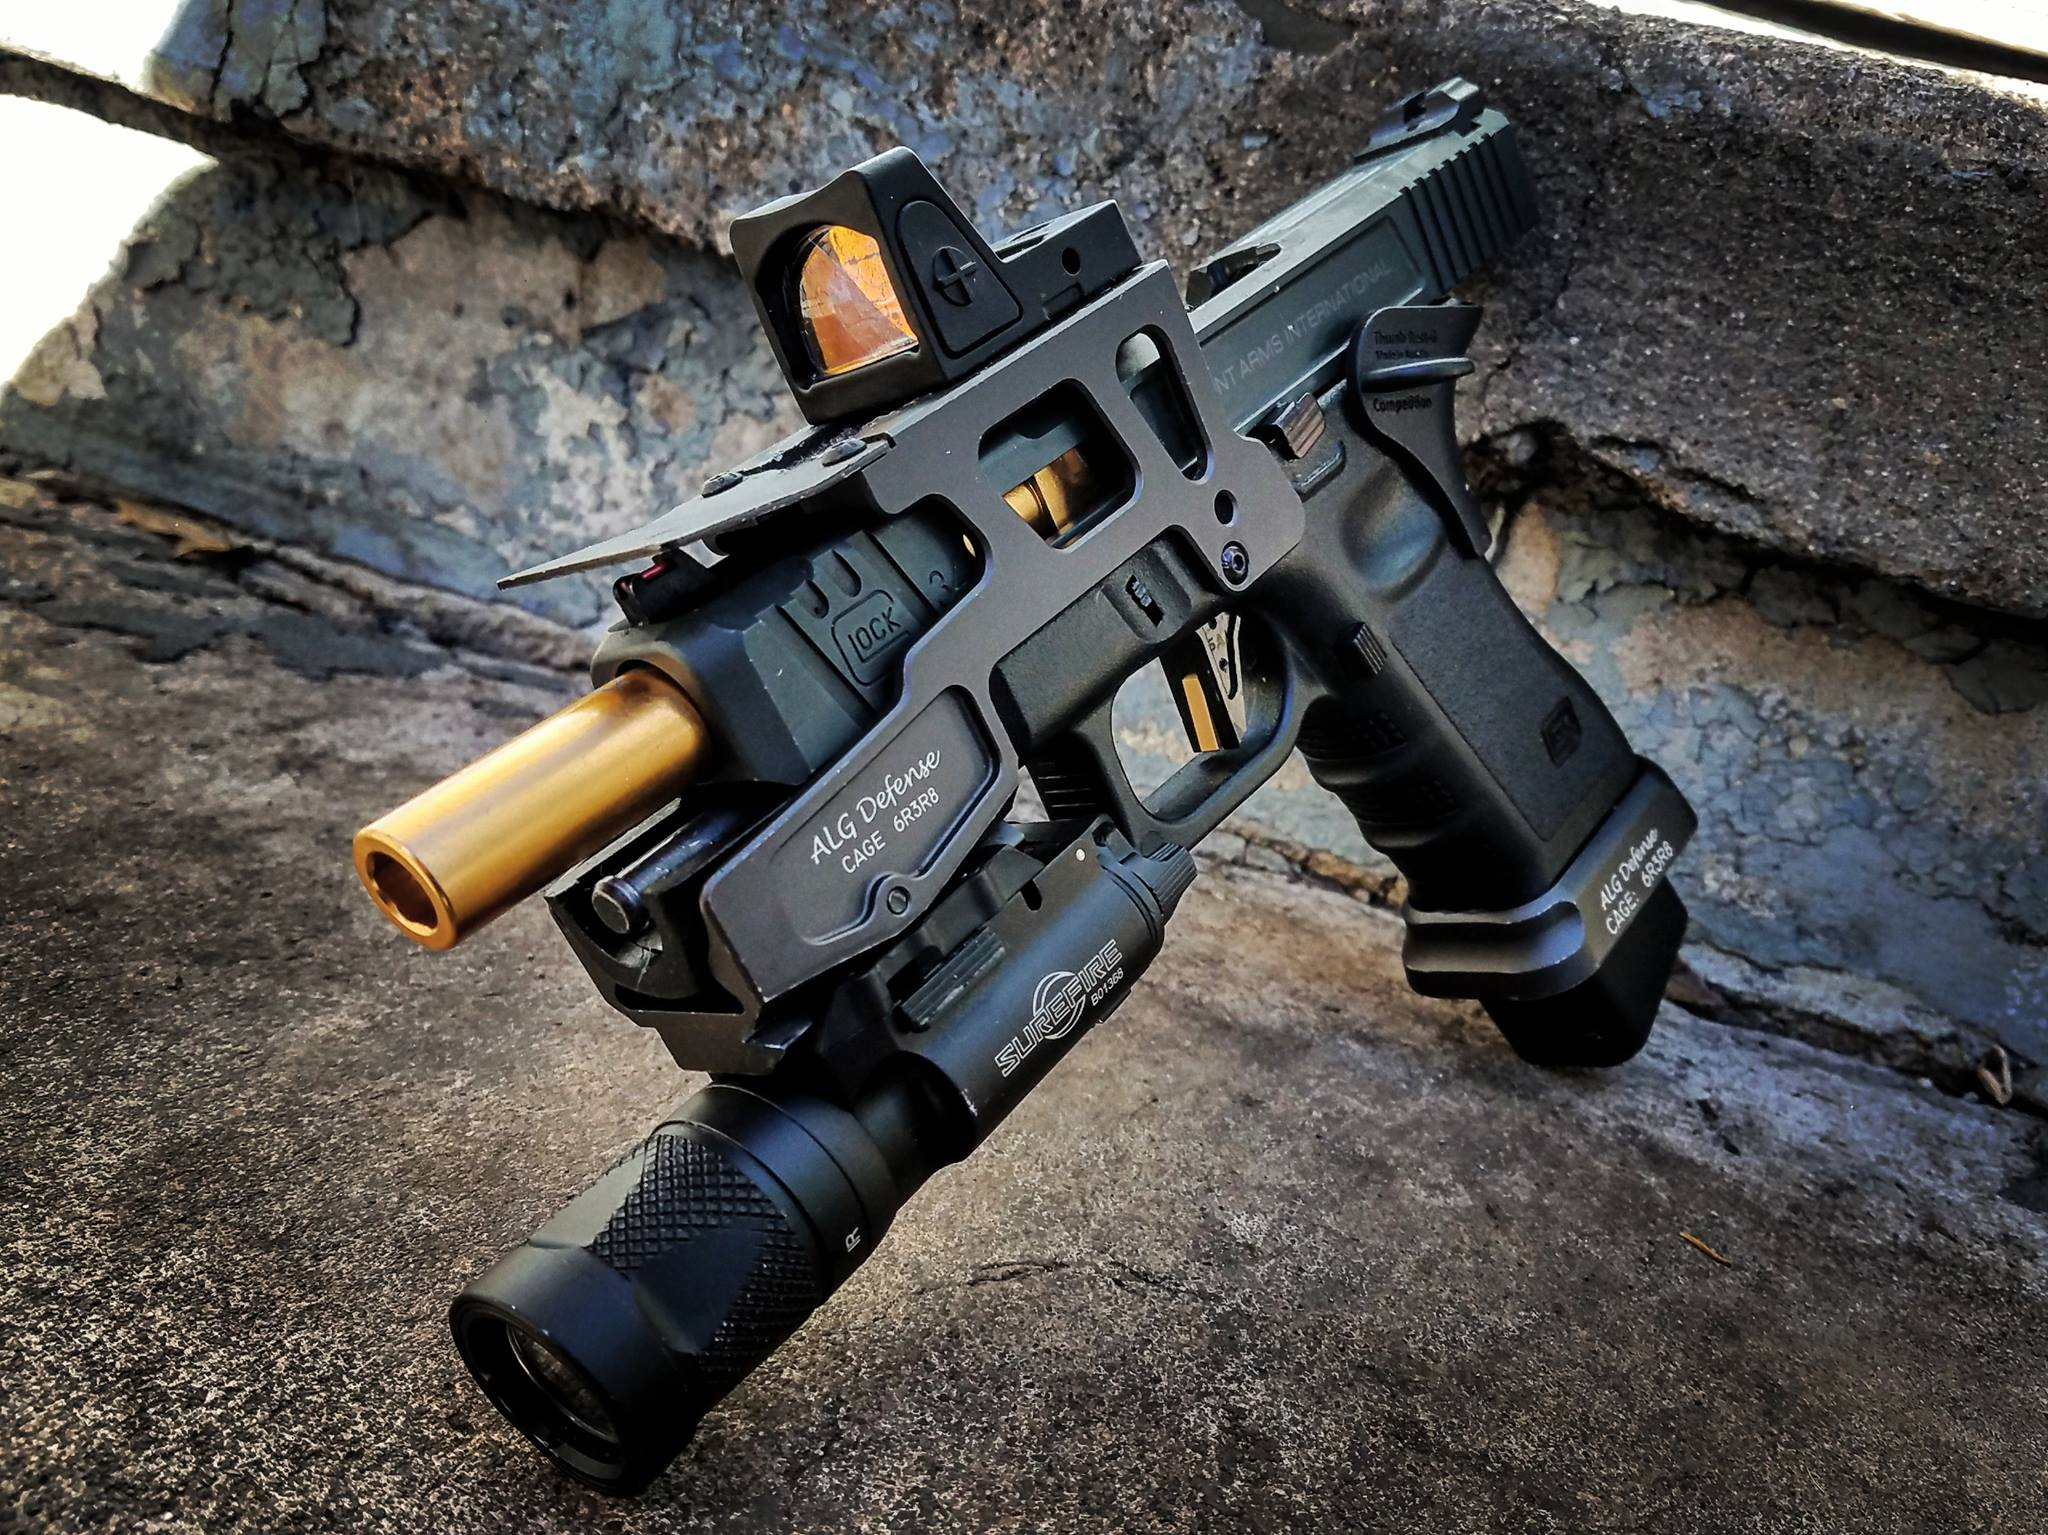 15 Best Upgrades for Pistols